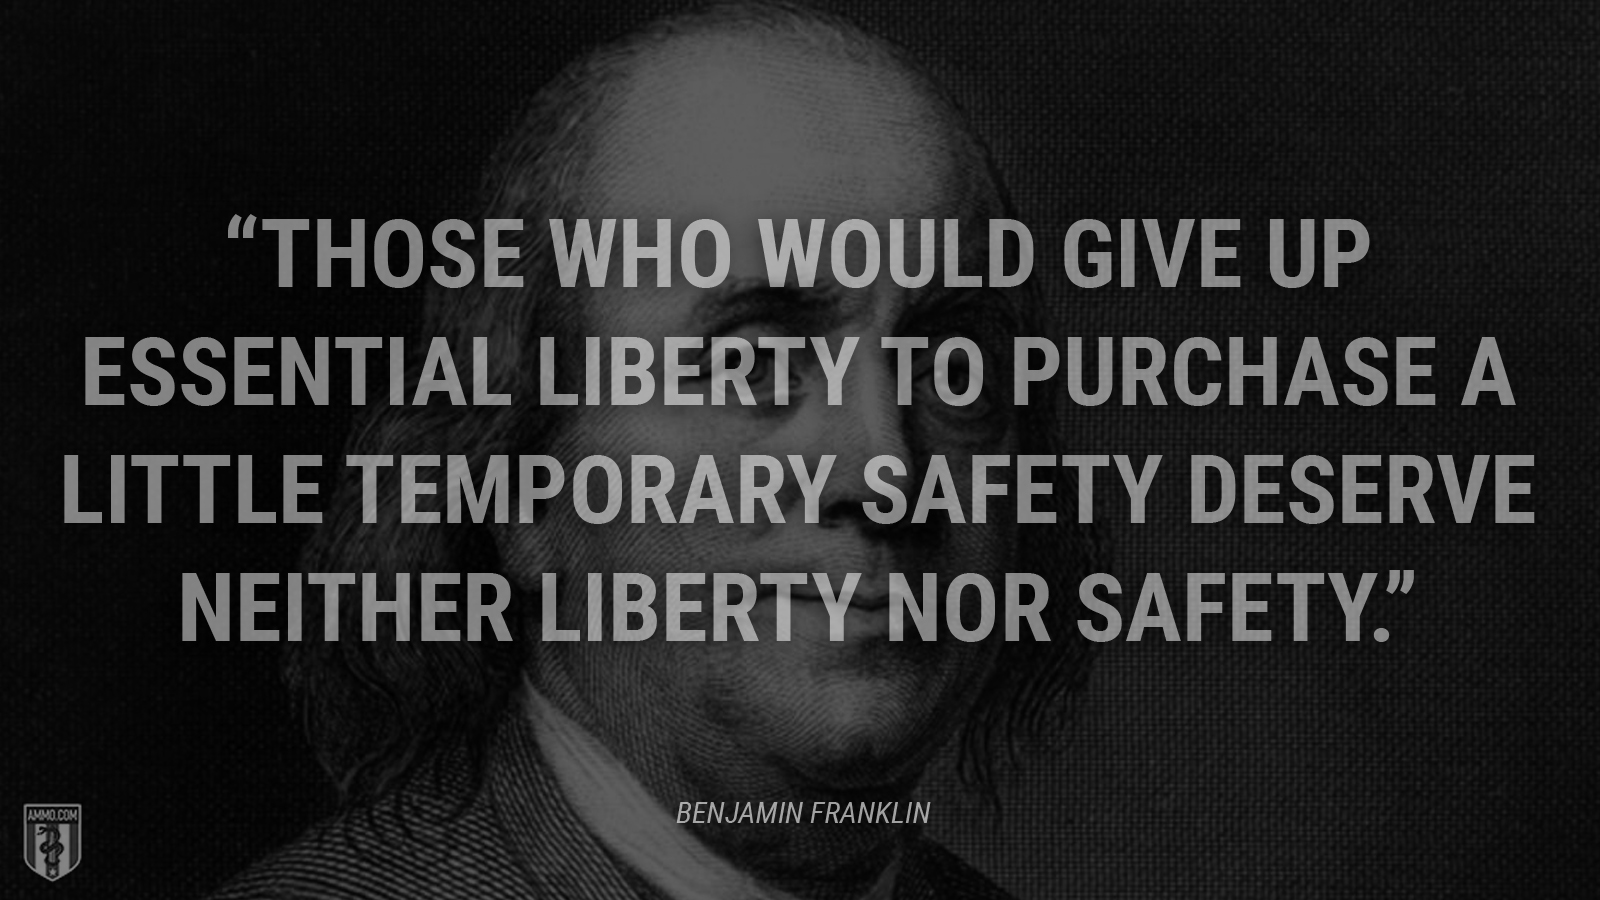 """Those who would give up essential liberty to purchase a little temporary safety deserve neither liberty nor safety."" - Benjamin Franklin"